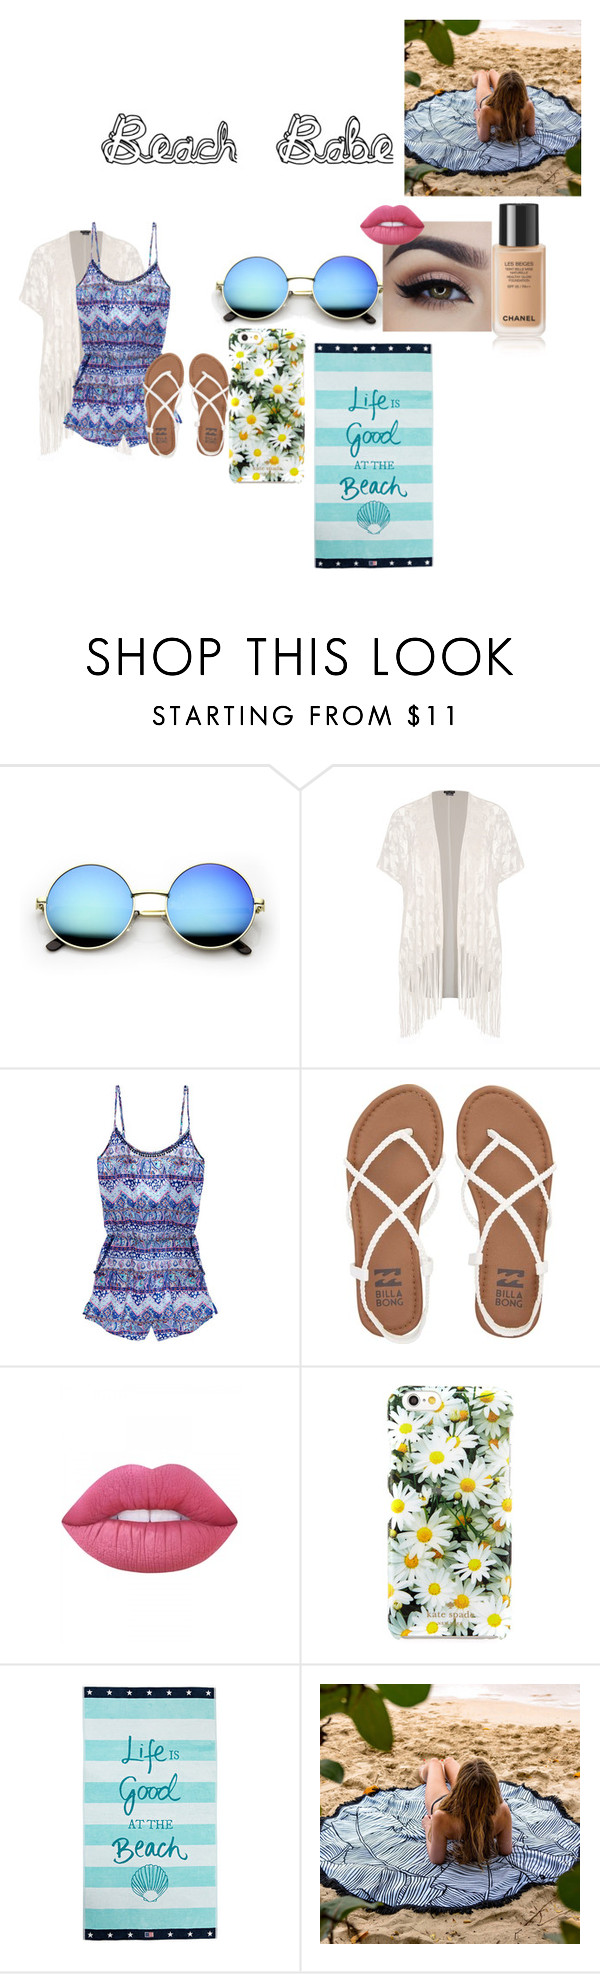 """This style is for the beach"" by abbiebroadway ❤ liked on Polyvore featuring City Chic, Victoria's Secret, Billabong, Lime Crime, Kate Spade and Lexington"